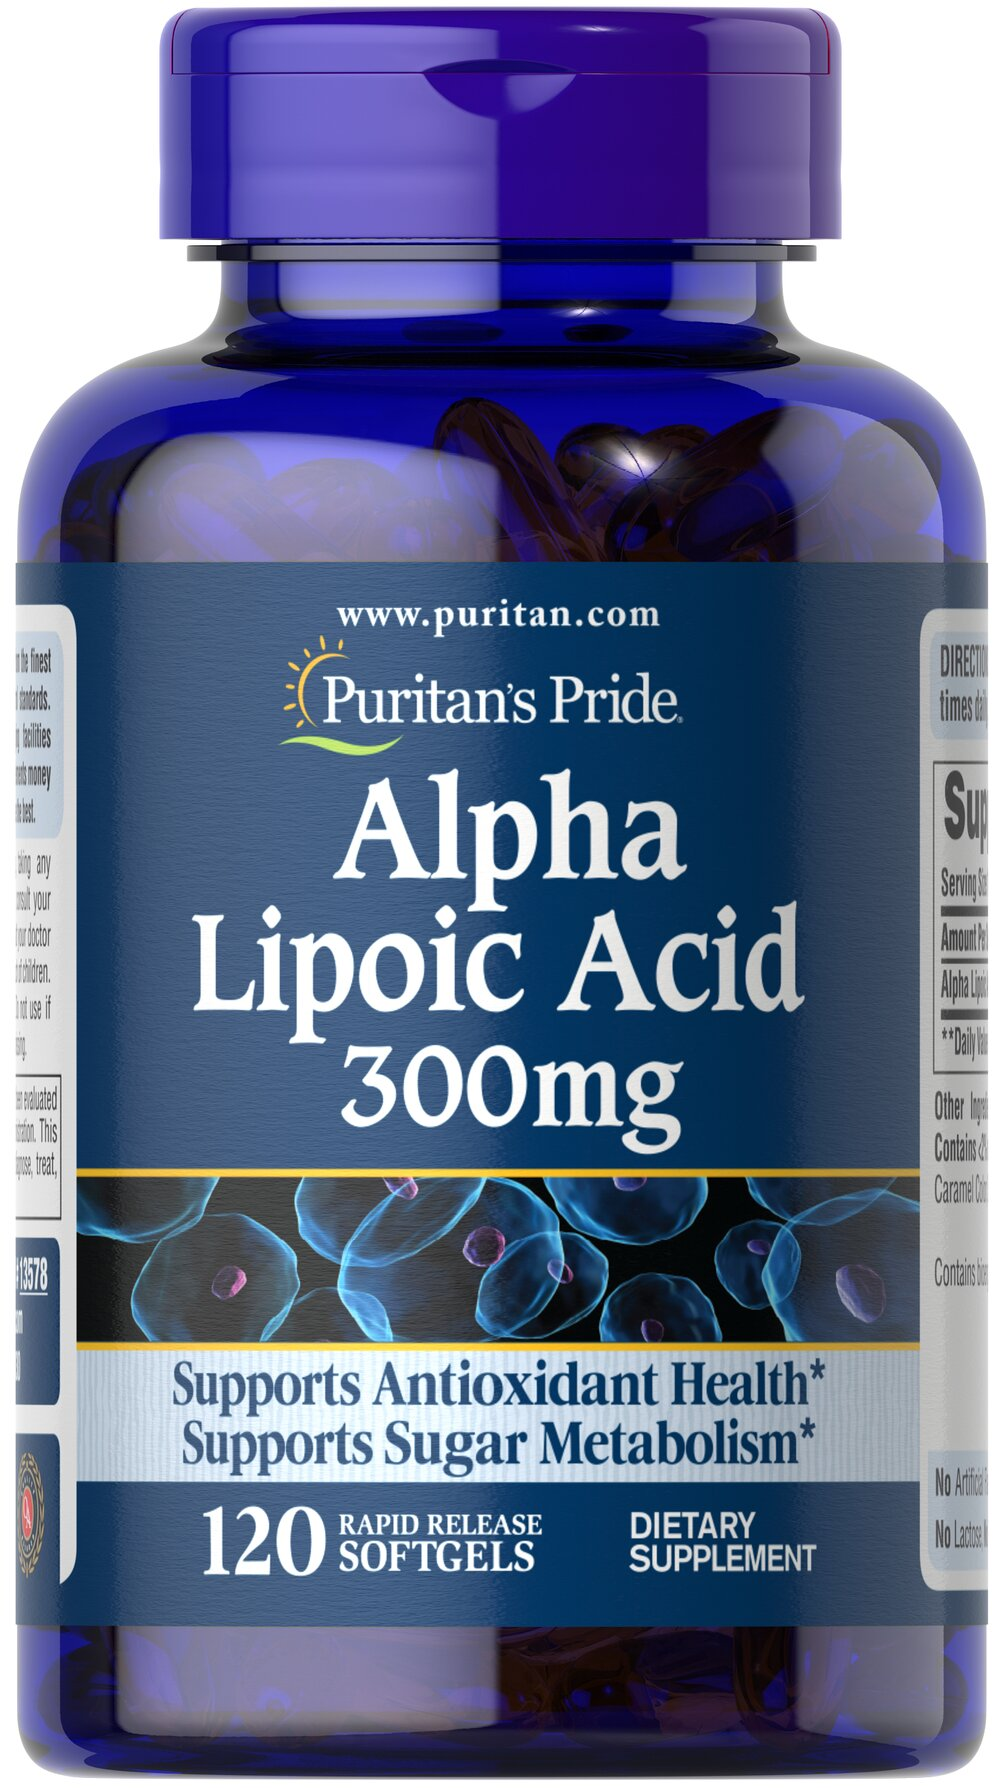 "Alpha Lipoic Acid 300 mg <p>Alpha Lipoic Acid (ALA) helps metabolize sugar, especially in muscles, where it promotes energy.**</p><p>ALA is also beneficial for liver health, and helps to revitalize the underlying structure of the skin so it can look healthier and more radiant.**</p><p> ALA is often called the ""universal antioxidant"" for its ability to help neutralize cell-damaging free radicals.** </p> 120 Softgels 300 mg $29.99"